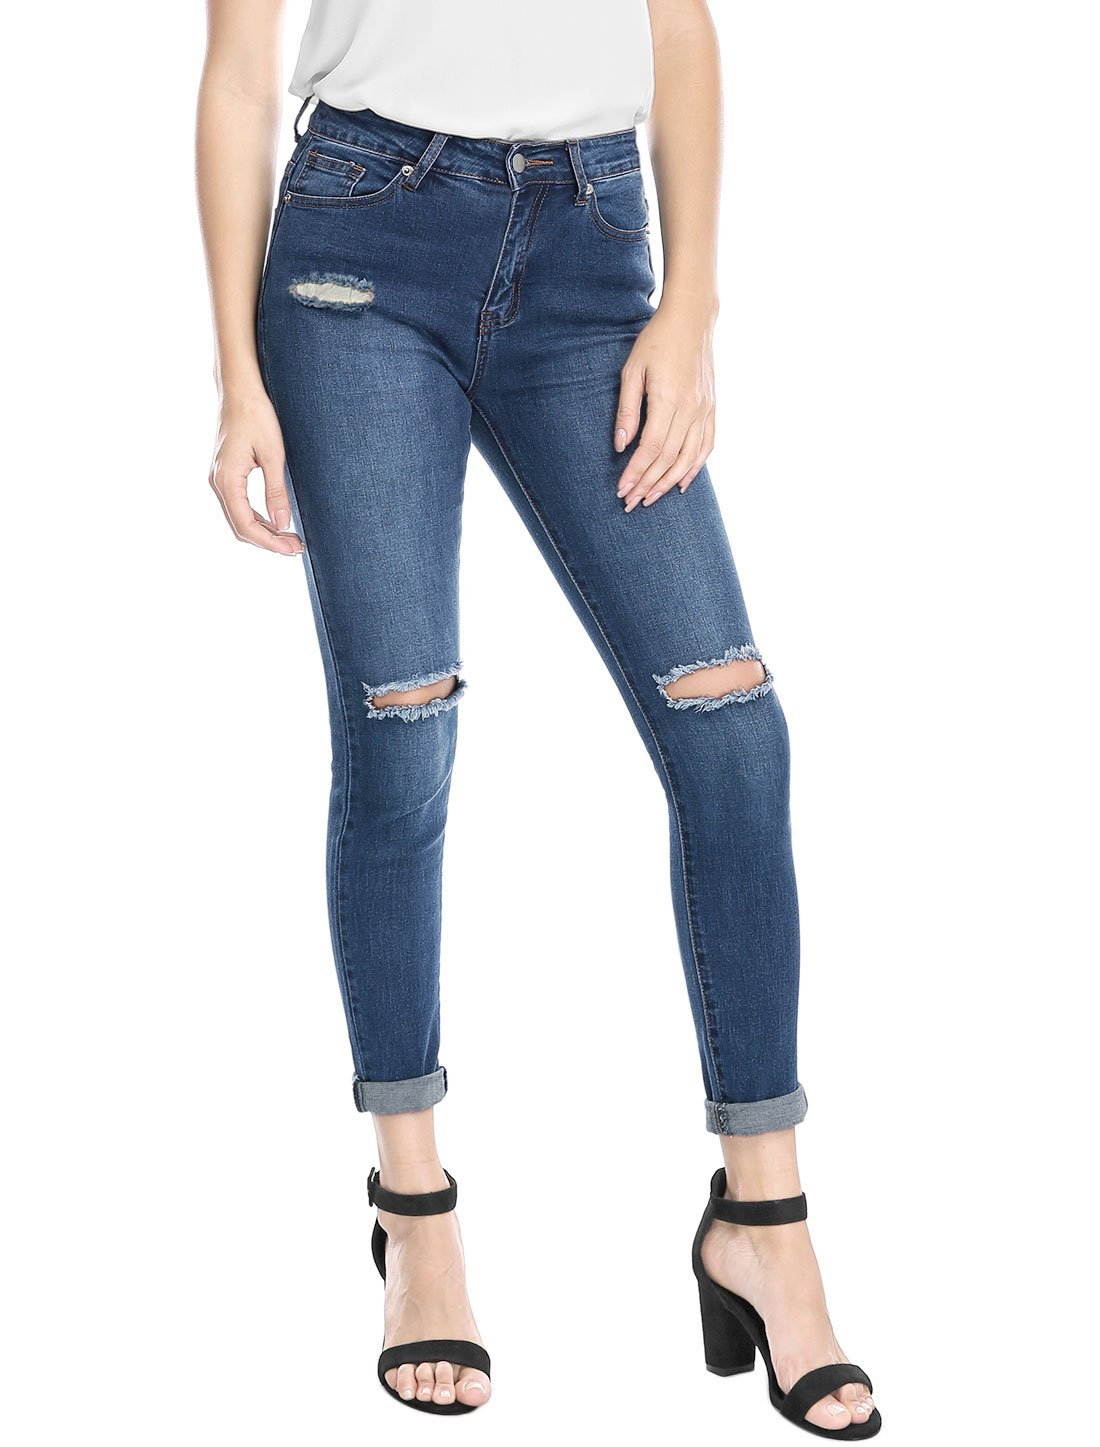 Allegra K Women's Mid Rise Stretch Distressed Design Skinny Jeans XL Blue